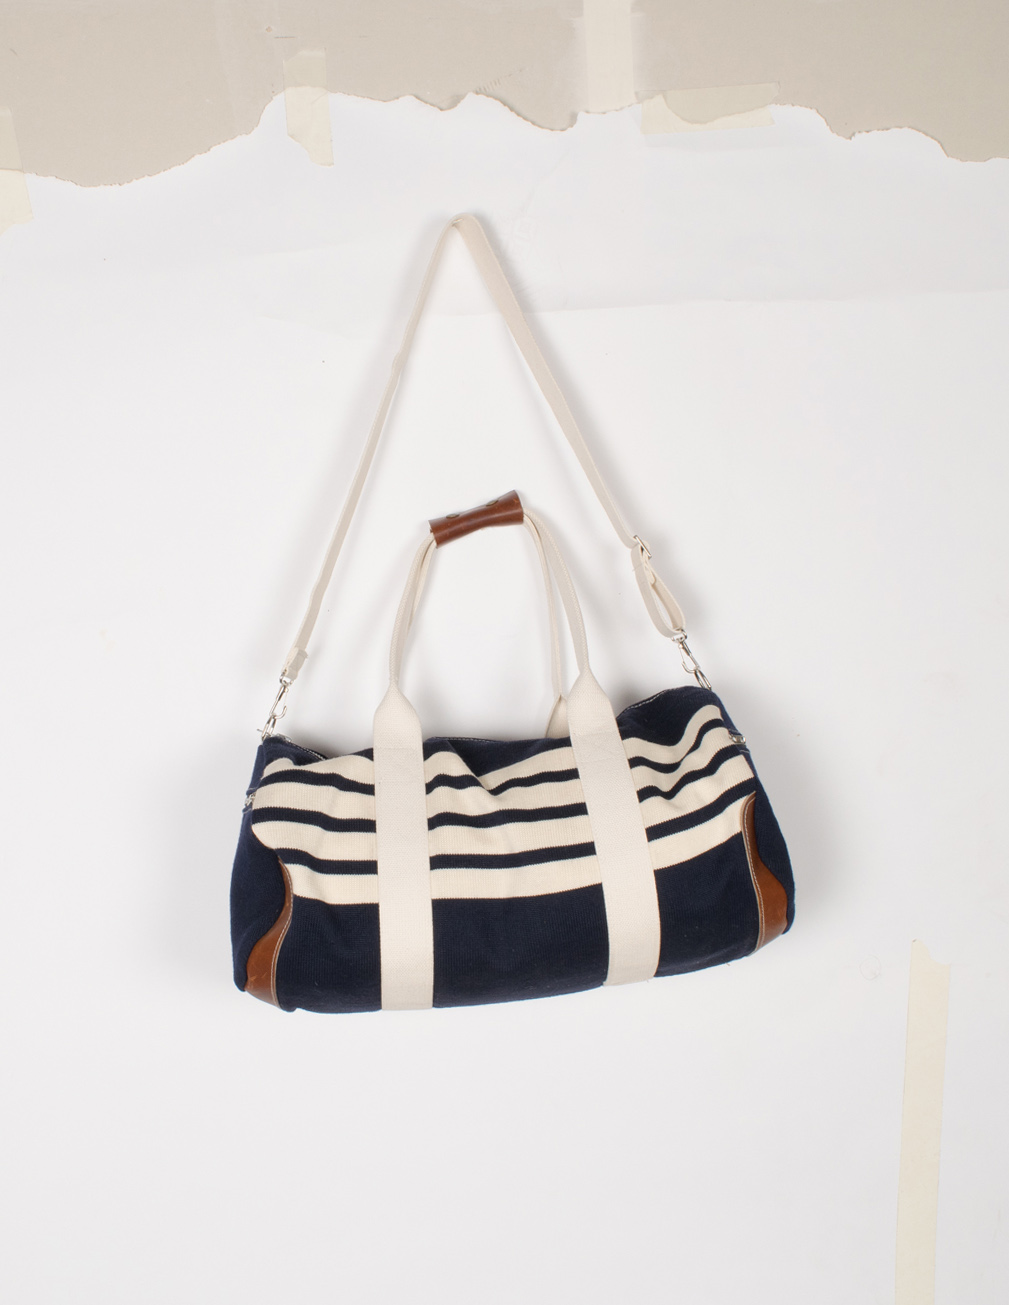 Knit Duffel Bag - Navy/Off-White - $320